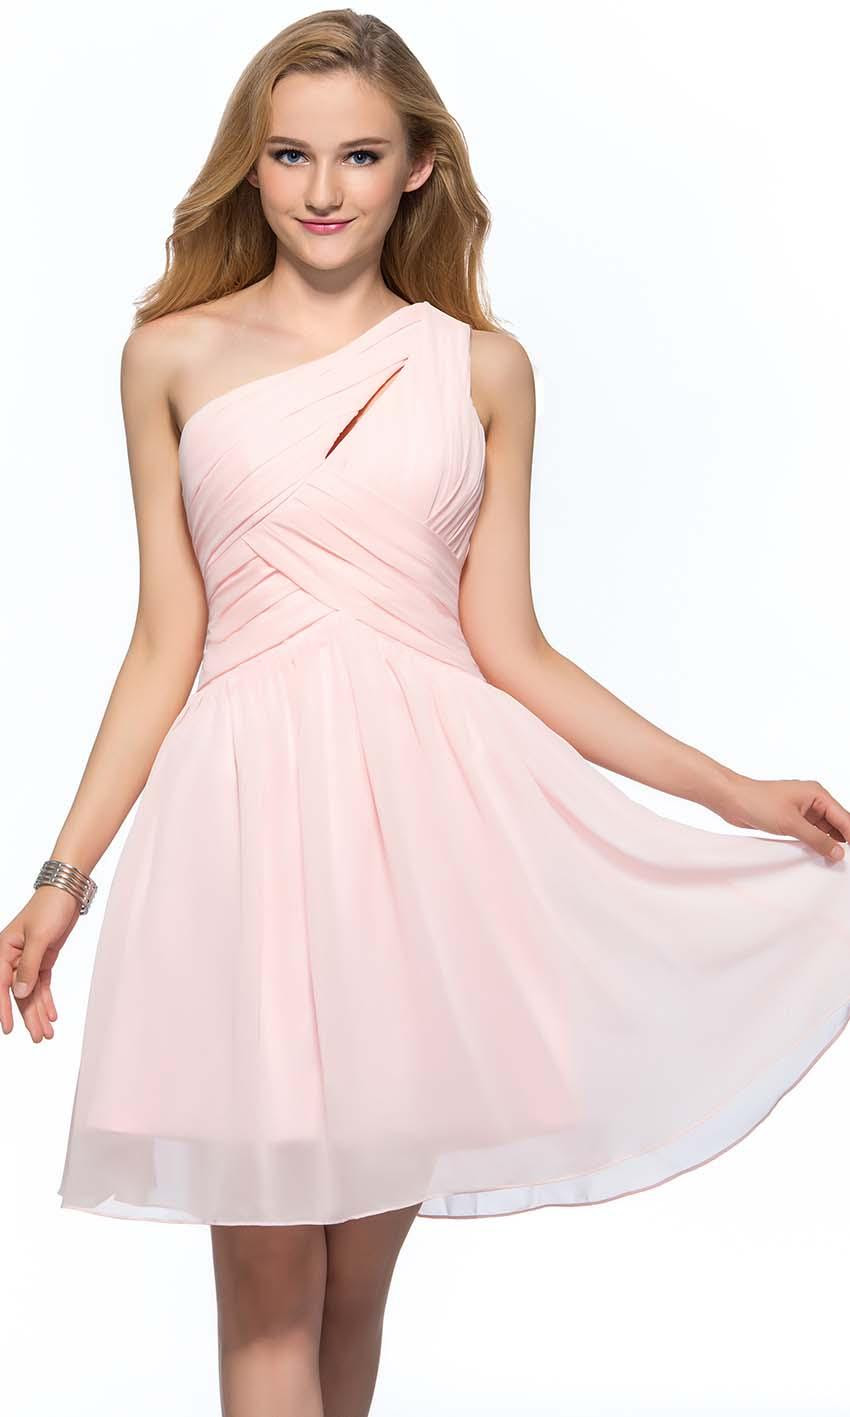 Evening dresses for prom uk